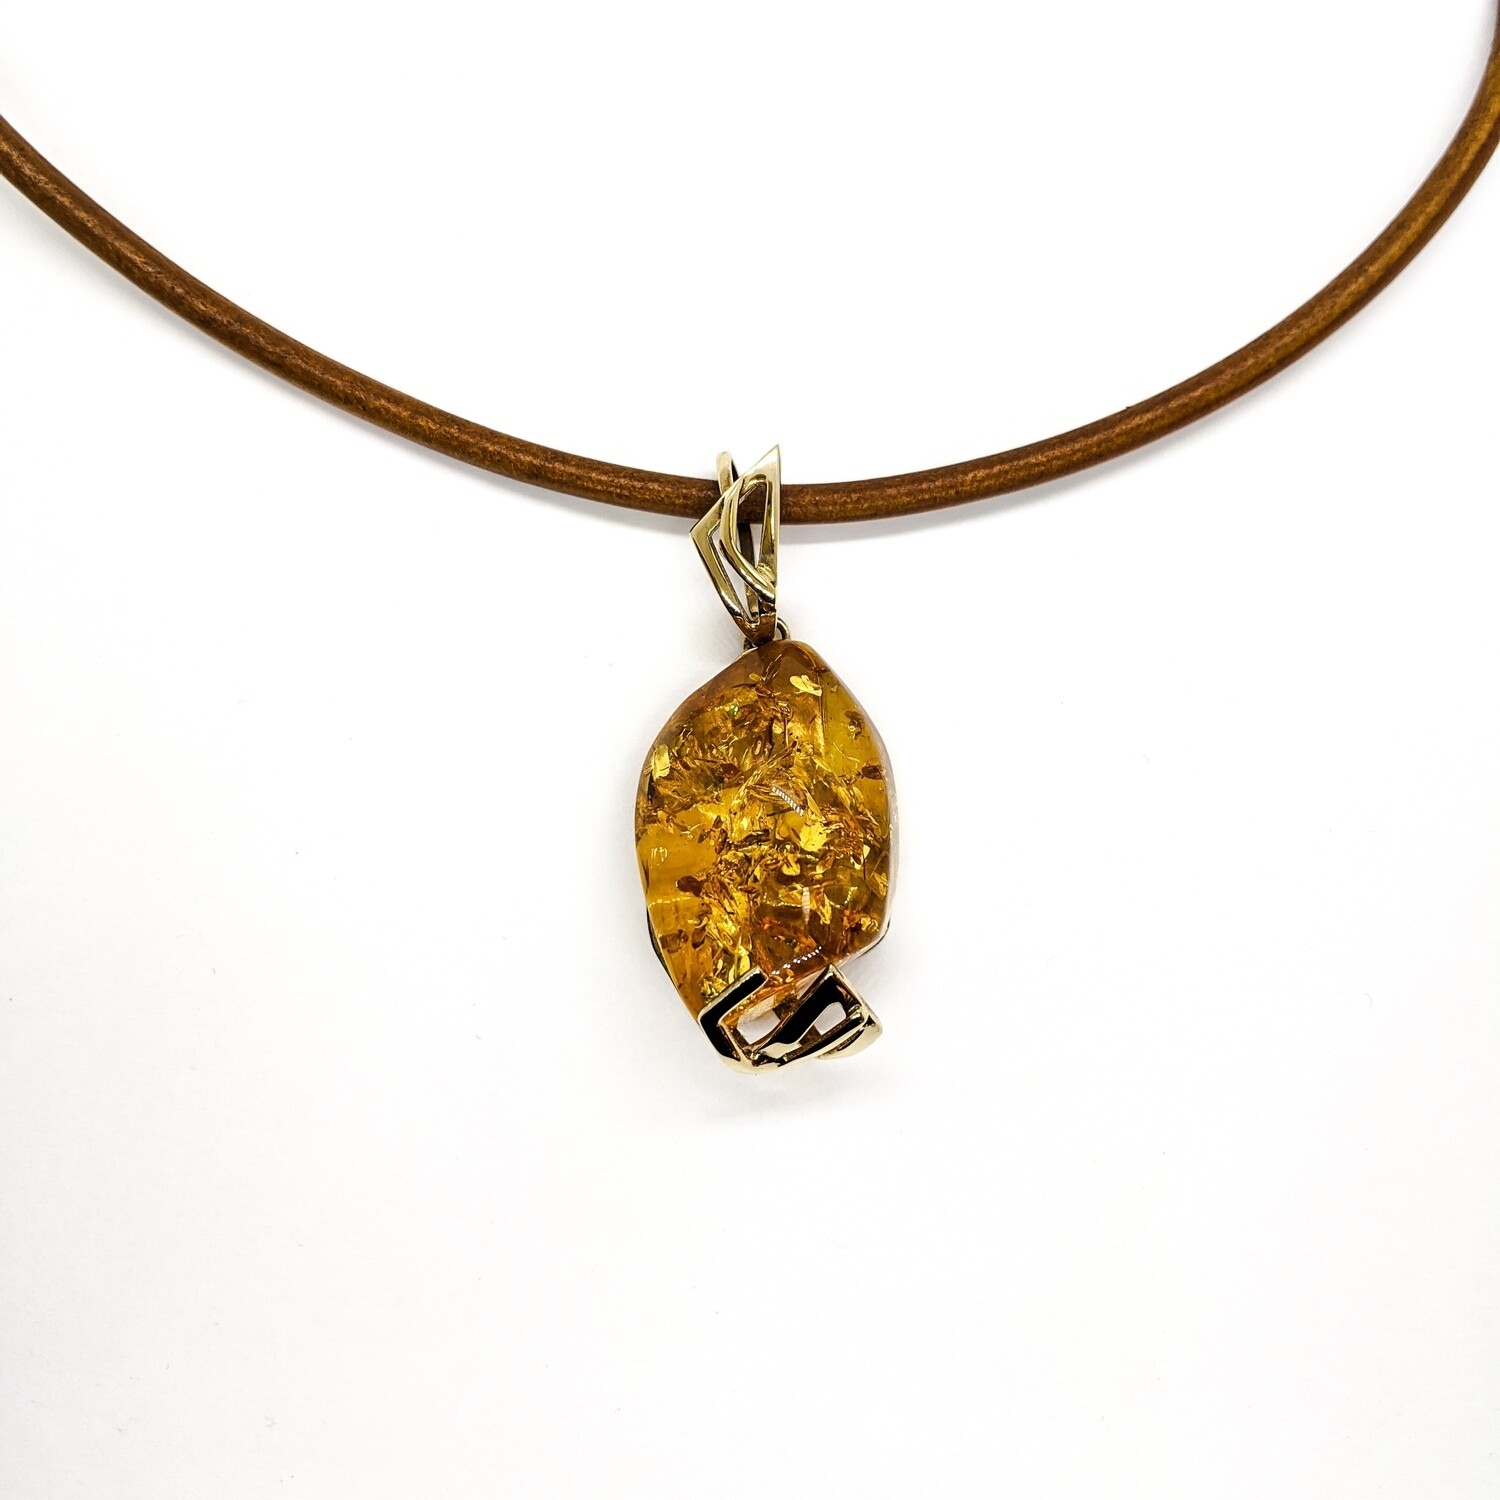 Silver pendant with amber